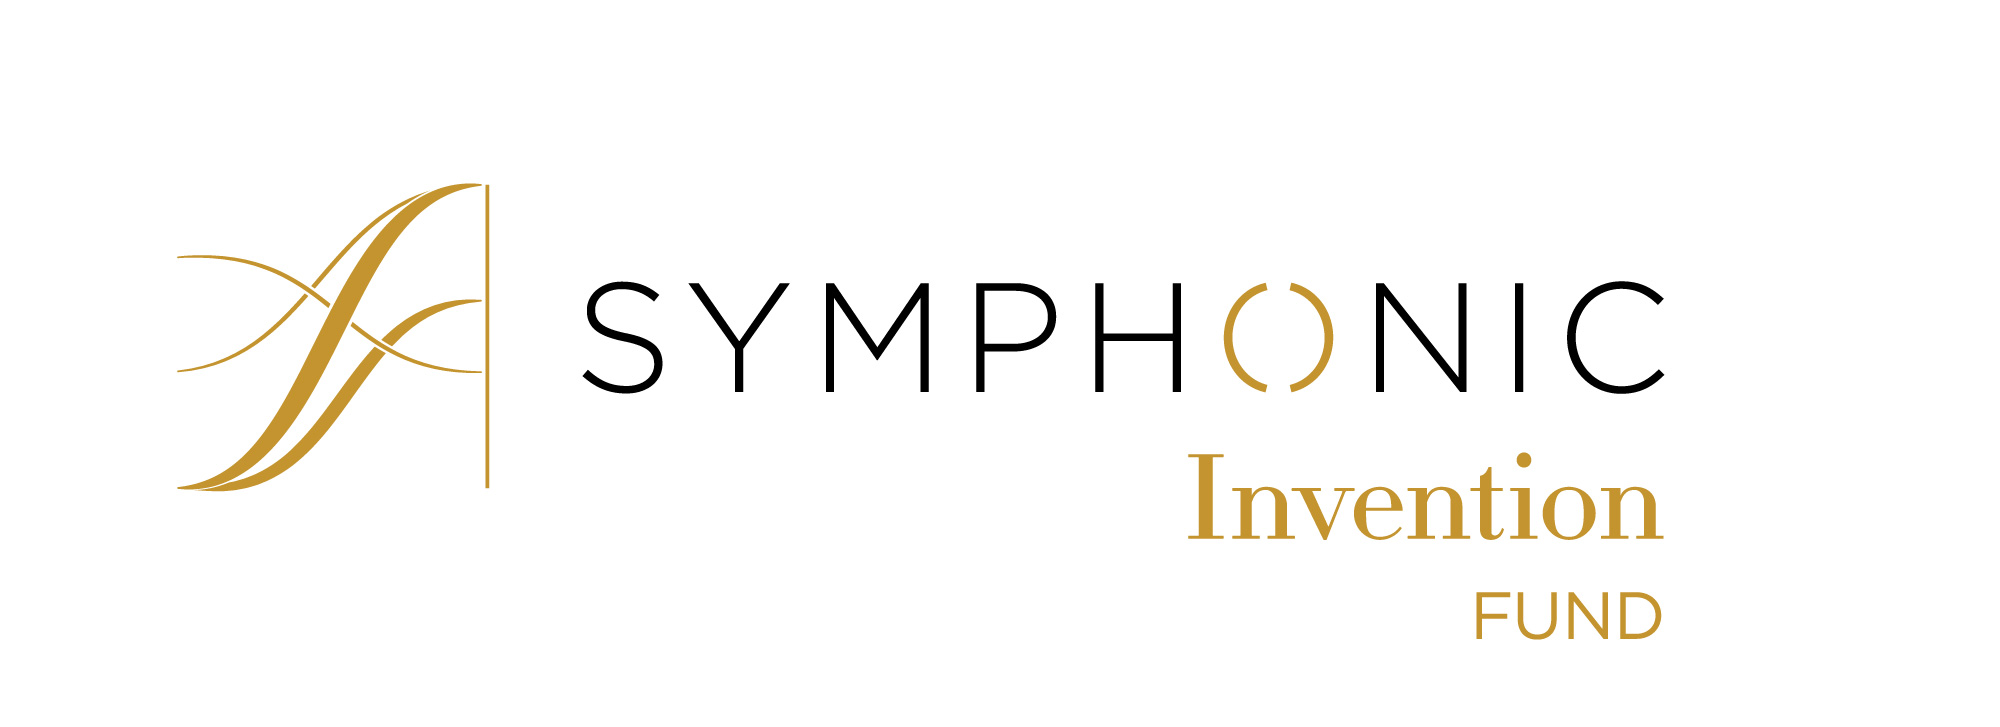 Symphonic Invention Logo Woven